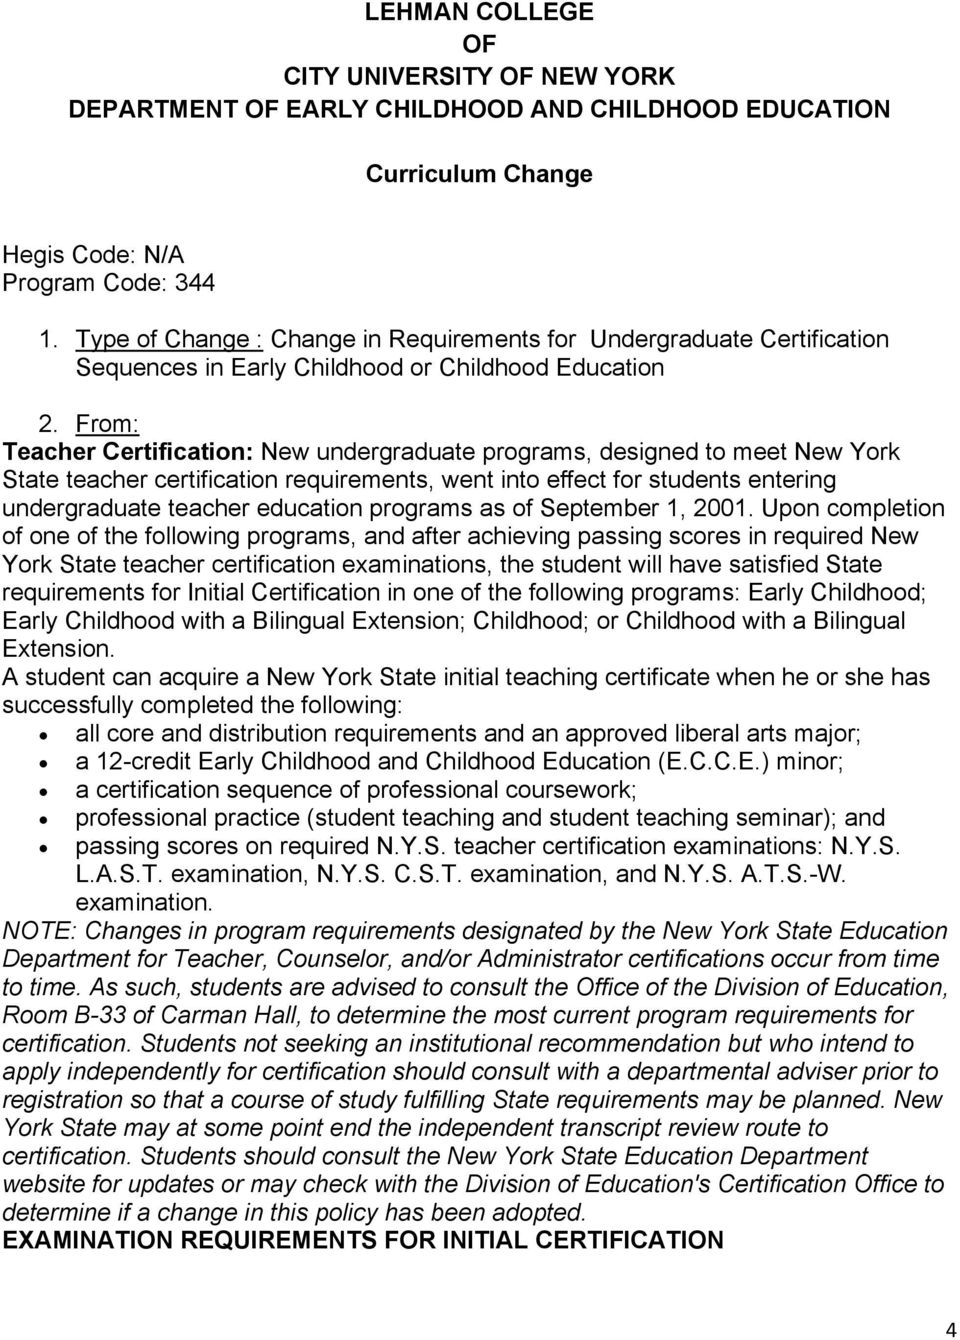 From: Teacher Certification: New undergraduate programs, designed to meet New York State teacher certification requirements, went into effect for students entering undergraduate teacher education